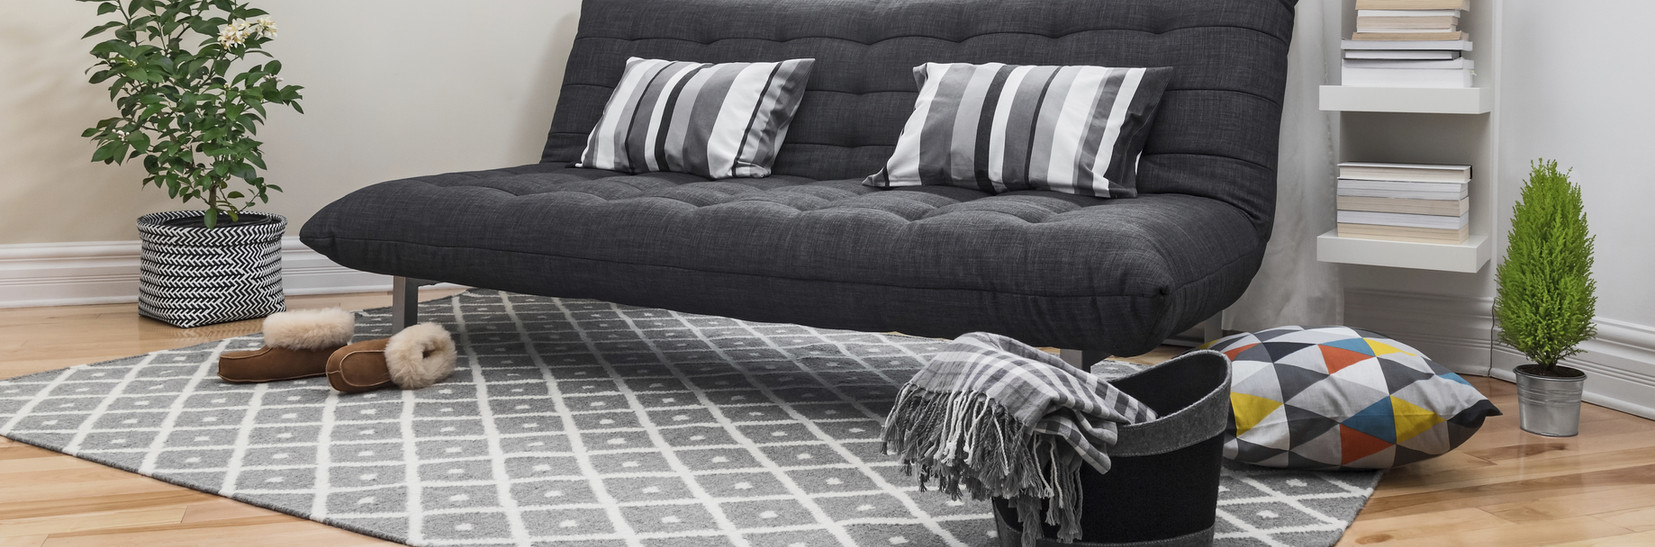 Black Couch on area rug